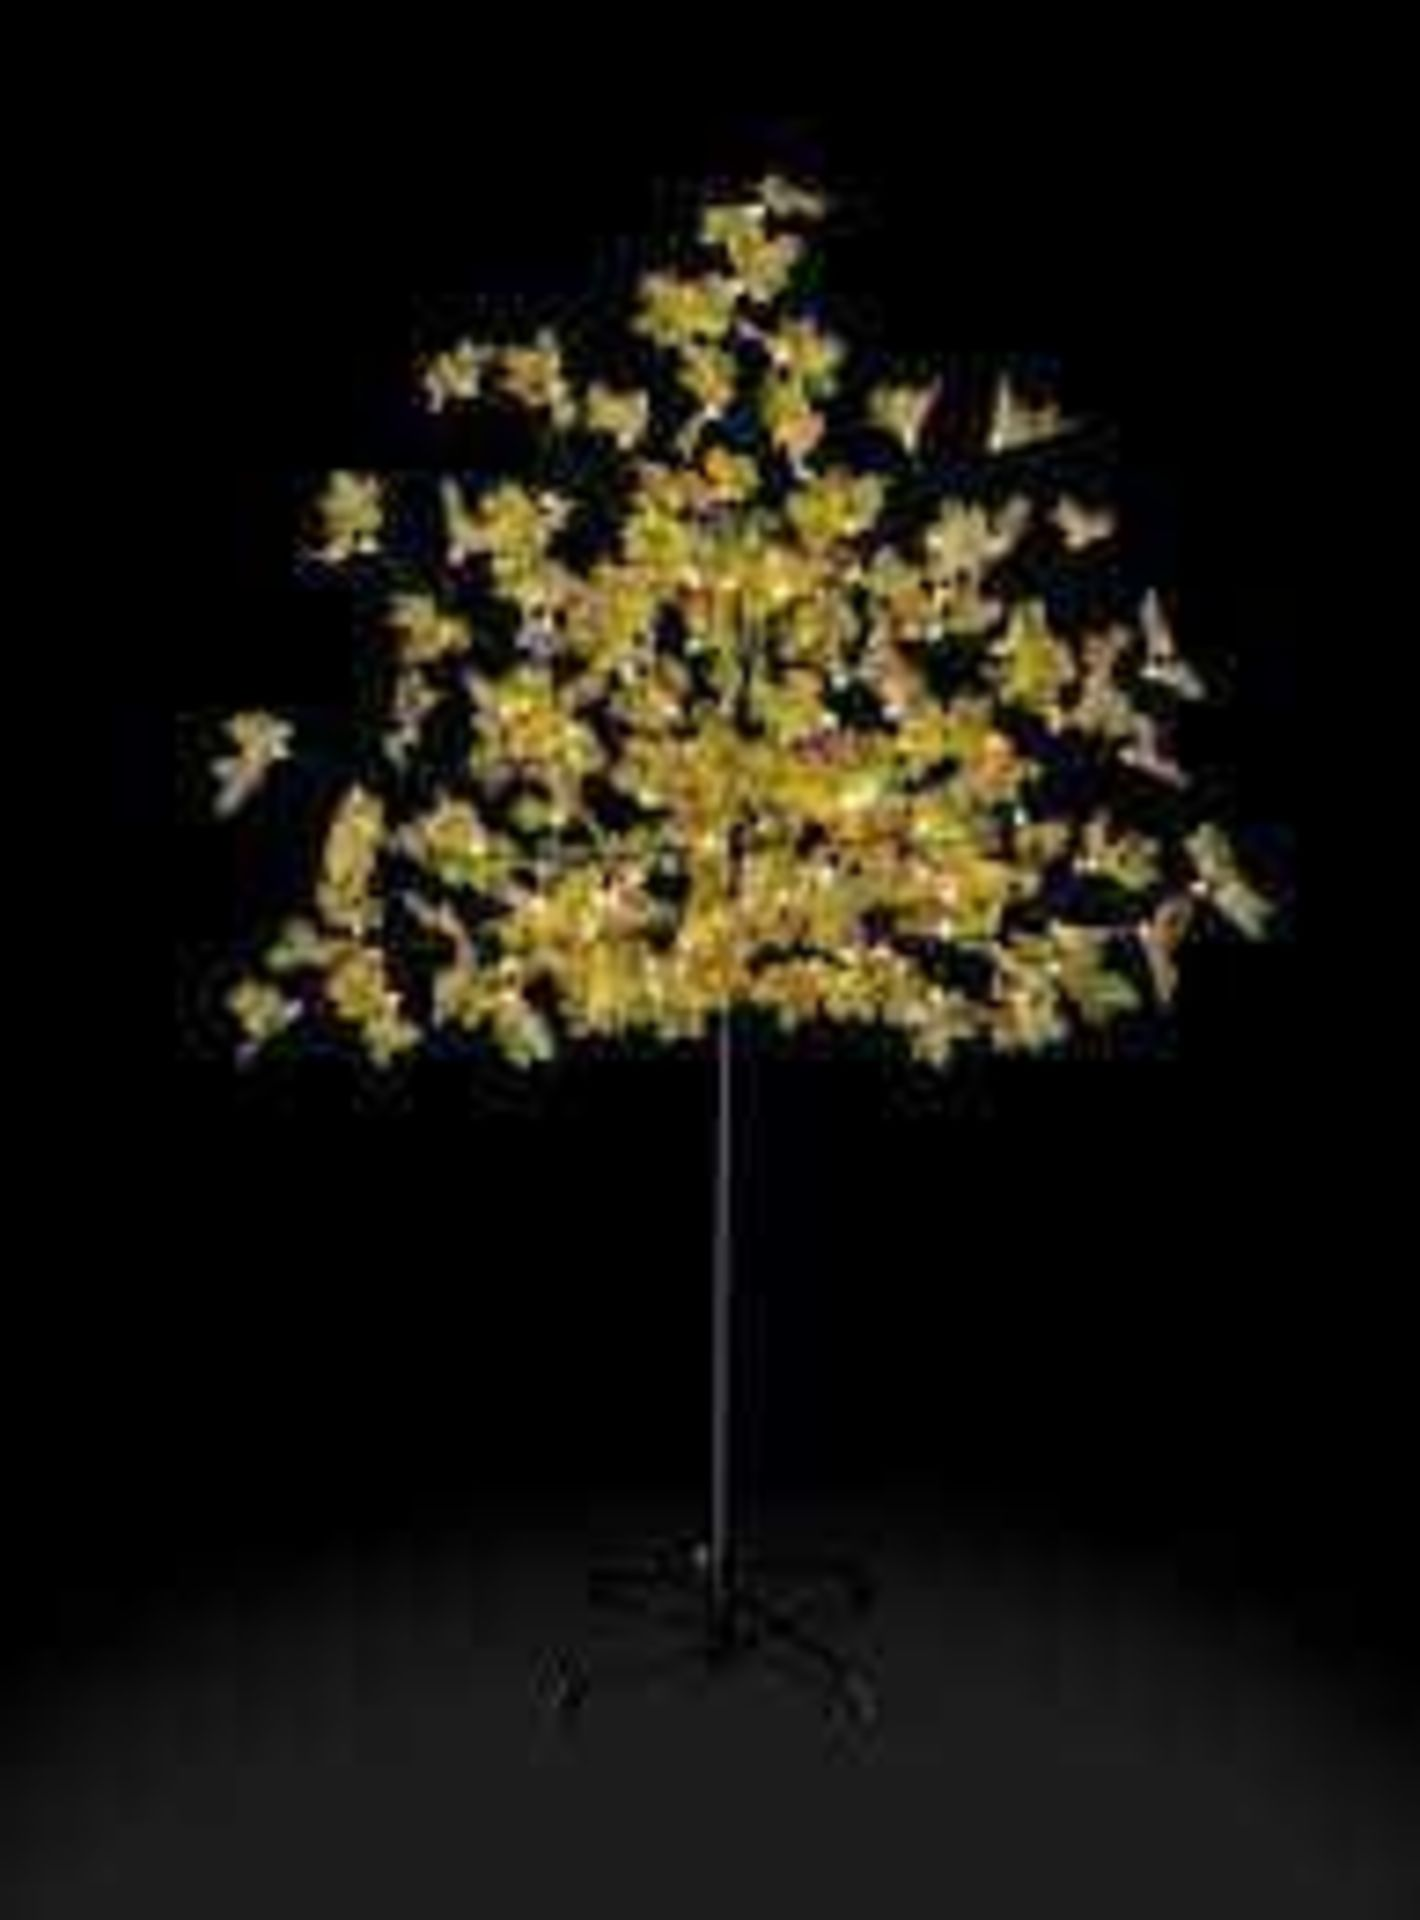 RRP £50 Boxed Premier 1.8M Led Maple Leaf Tree With Warm White Led Lights - Image 2 of 2